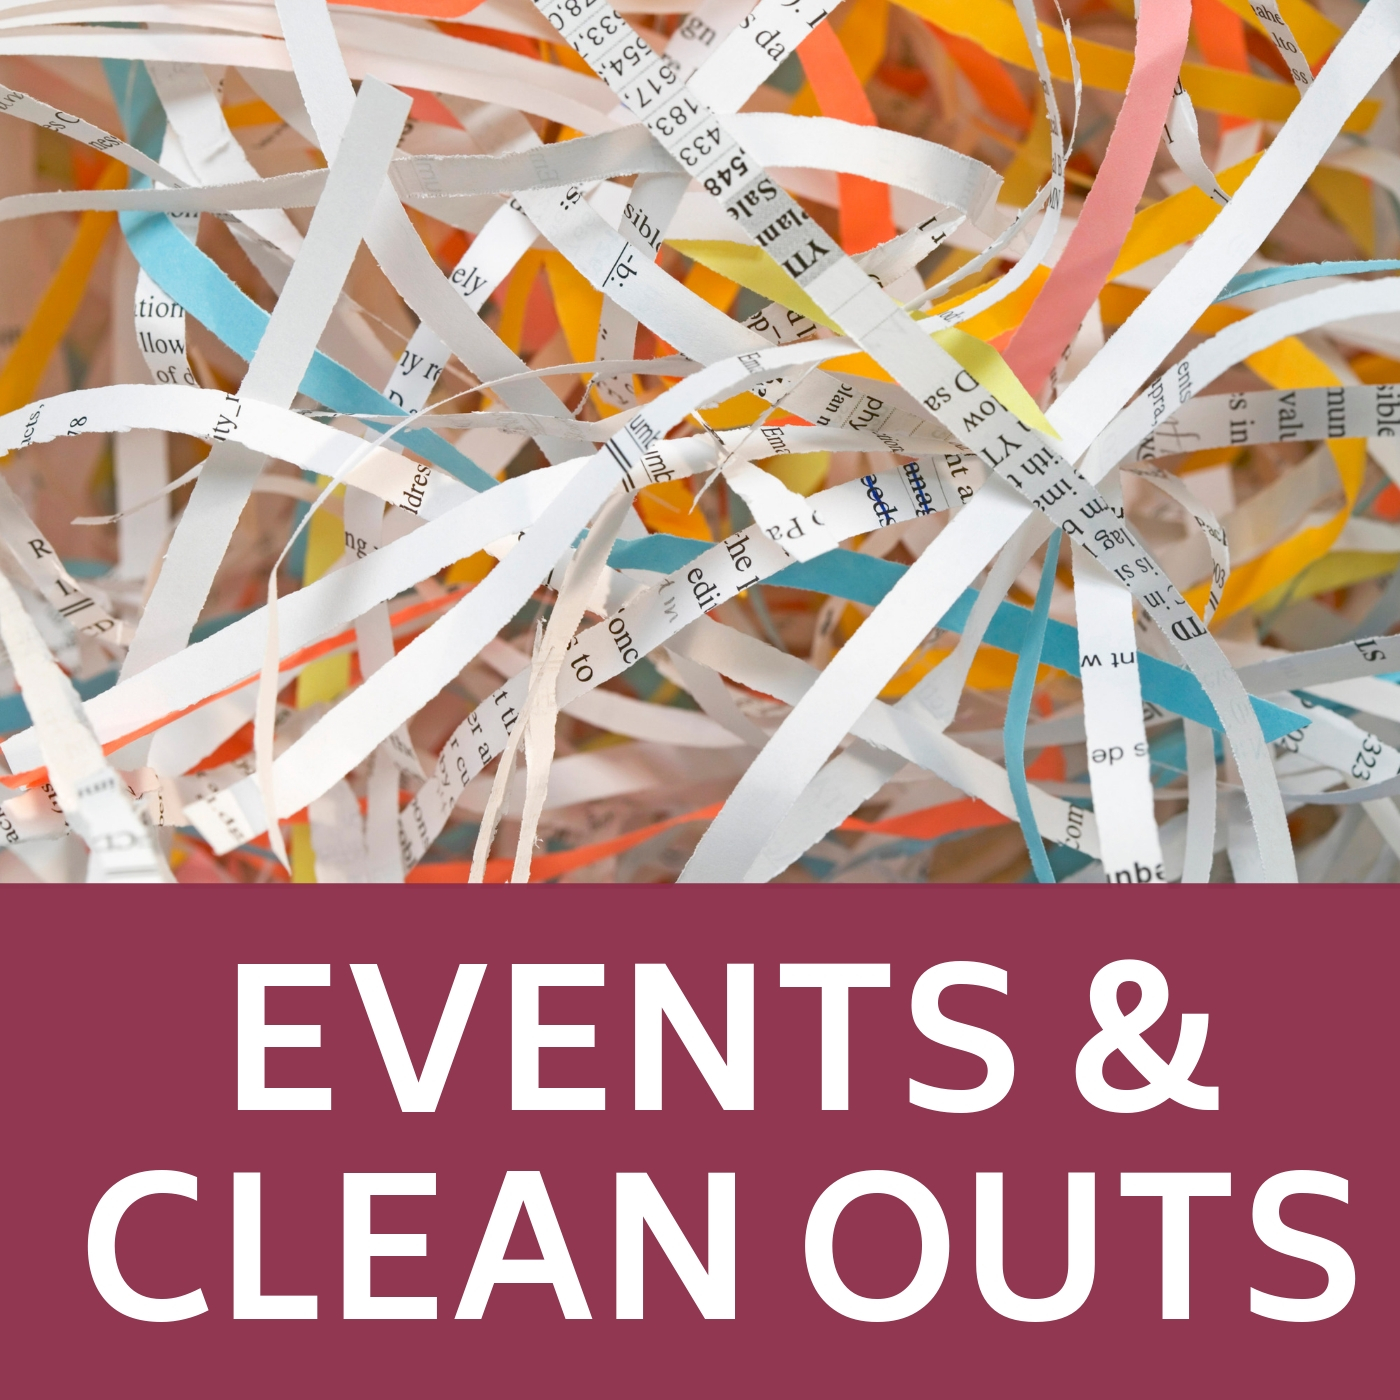 Events and Clean Outs Icon that links to a webpage with information about Township events and clean out weeks